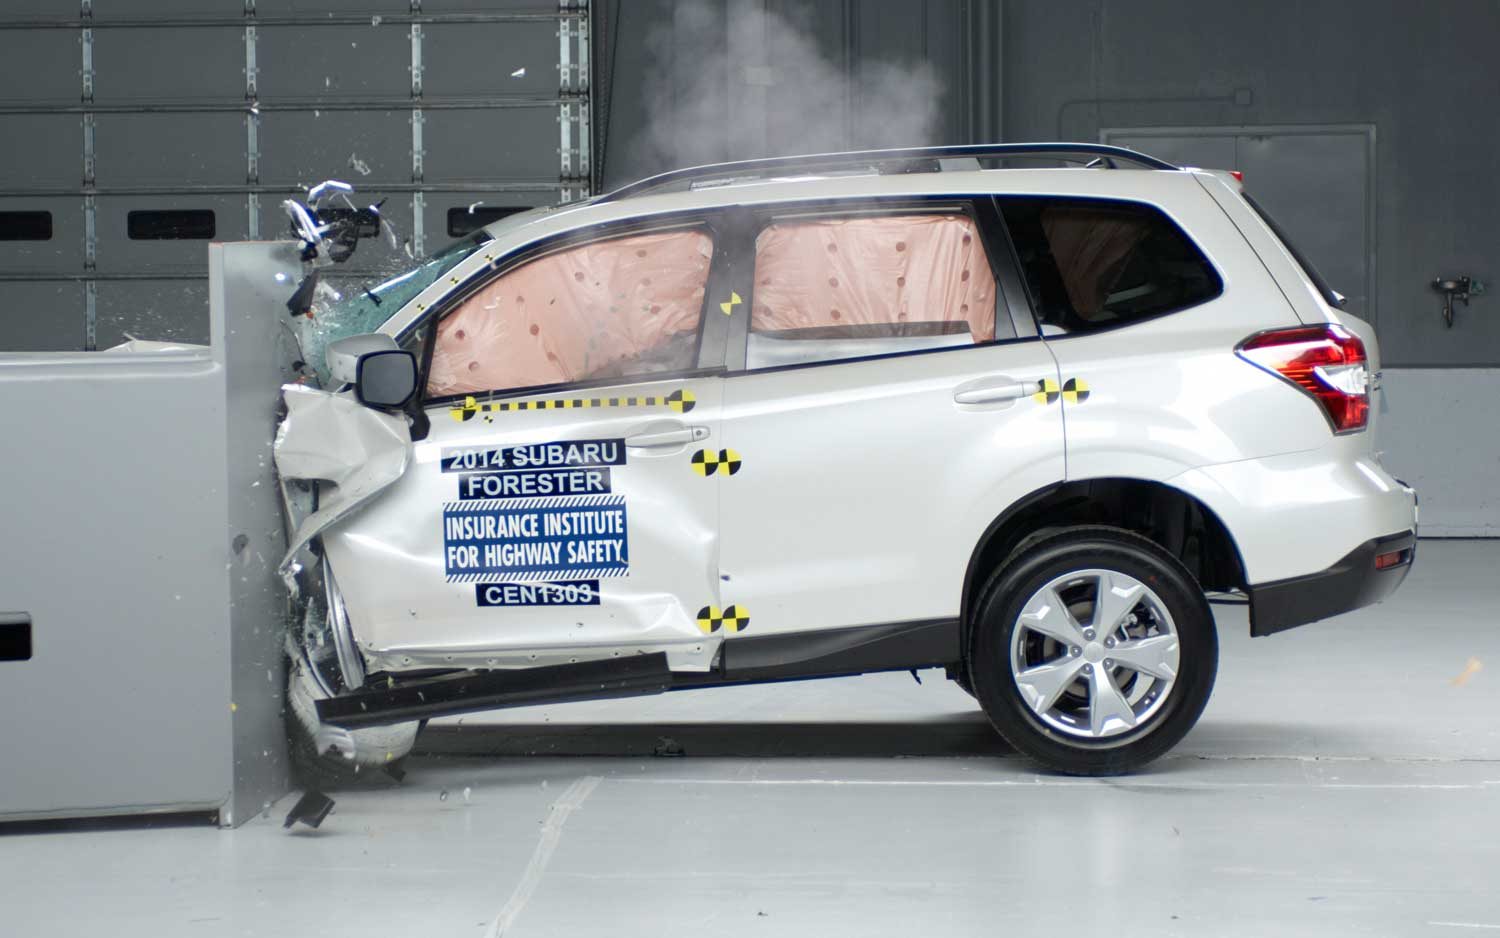 2014-subaru-forester-crash-test